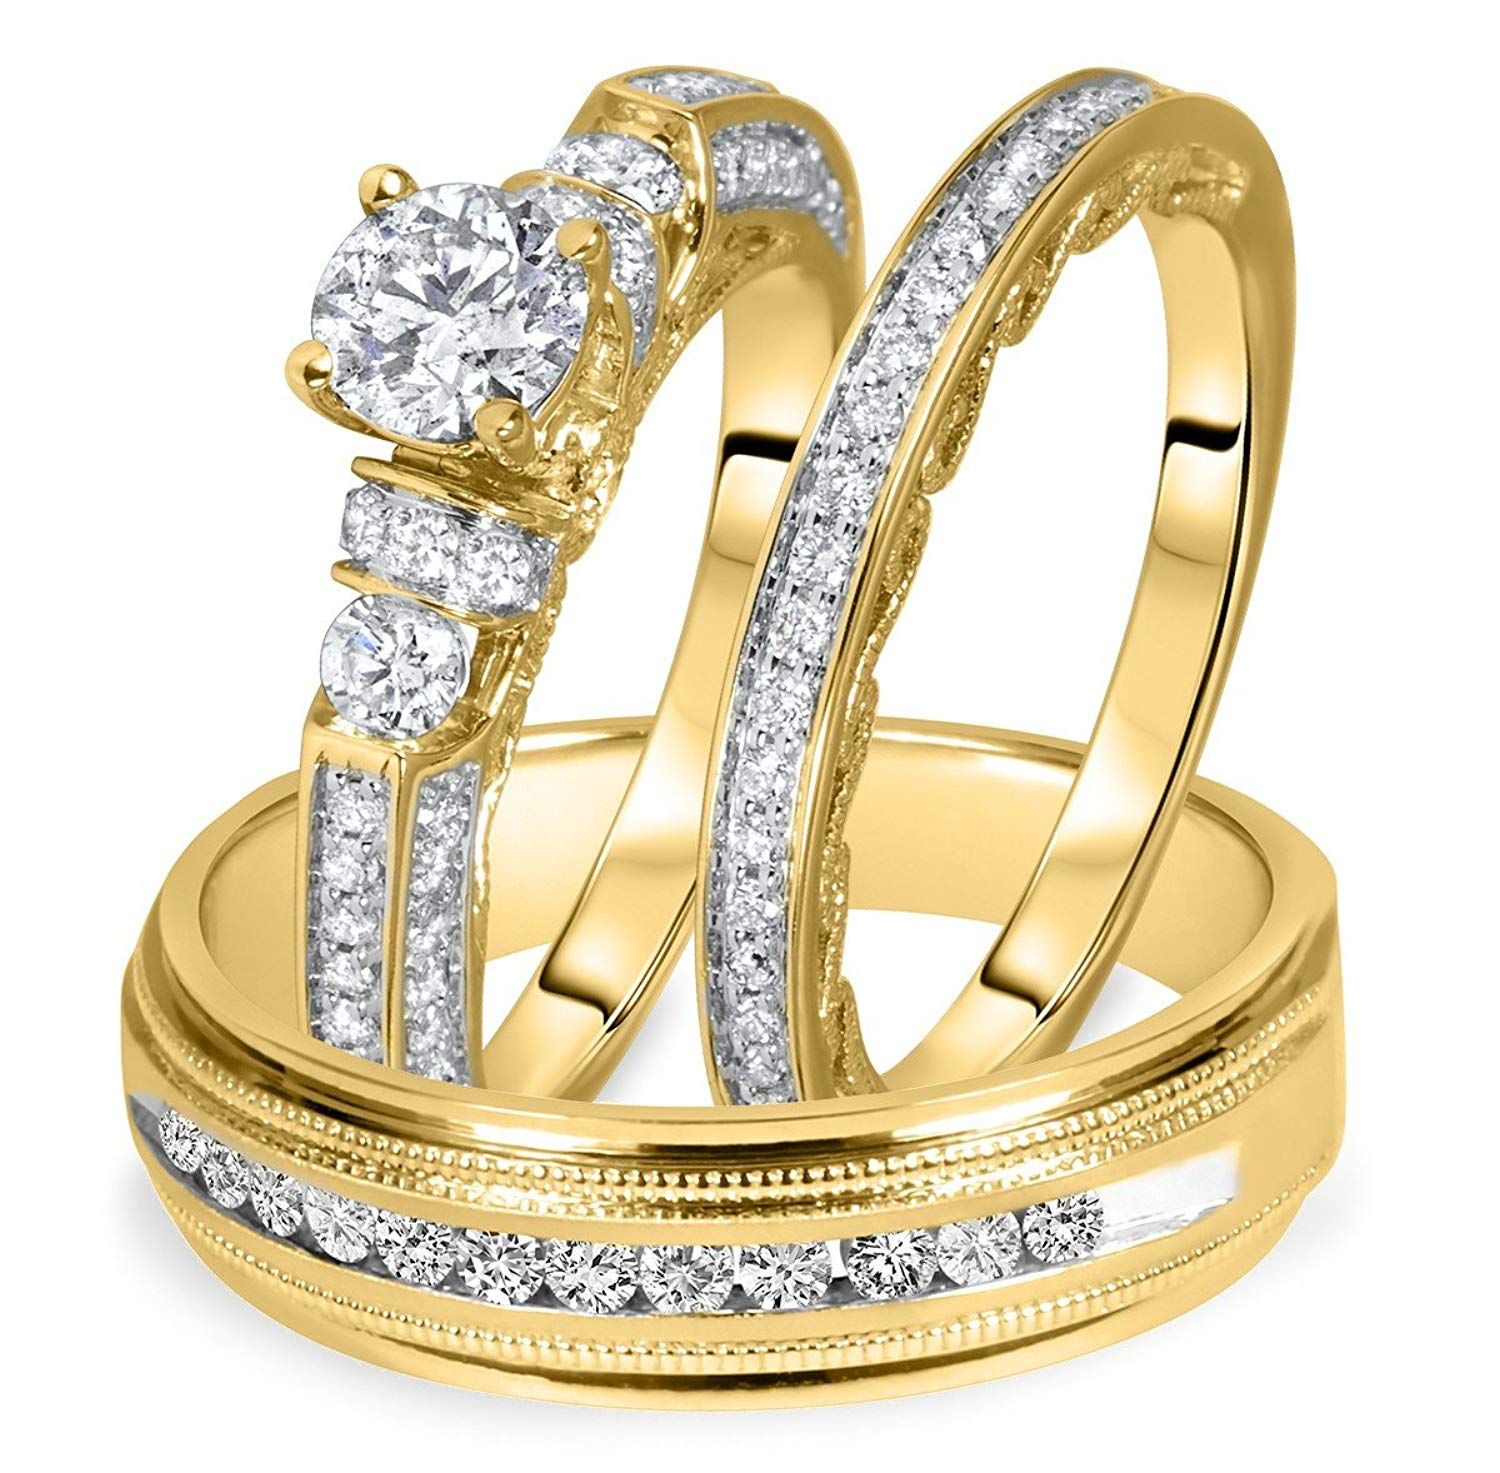 6707901ff4 Silvercz Jewels 1 1/2 Carat T.W. Round Diamond Matching Trio Wedding Ring  Set 14K Yellow Gold Over *** We do hope that you actually love our image.